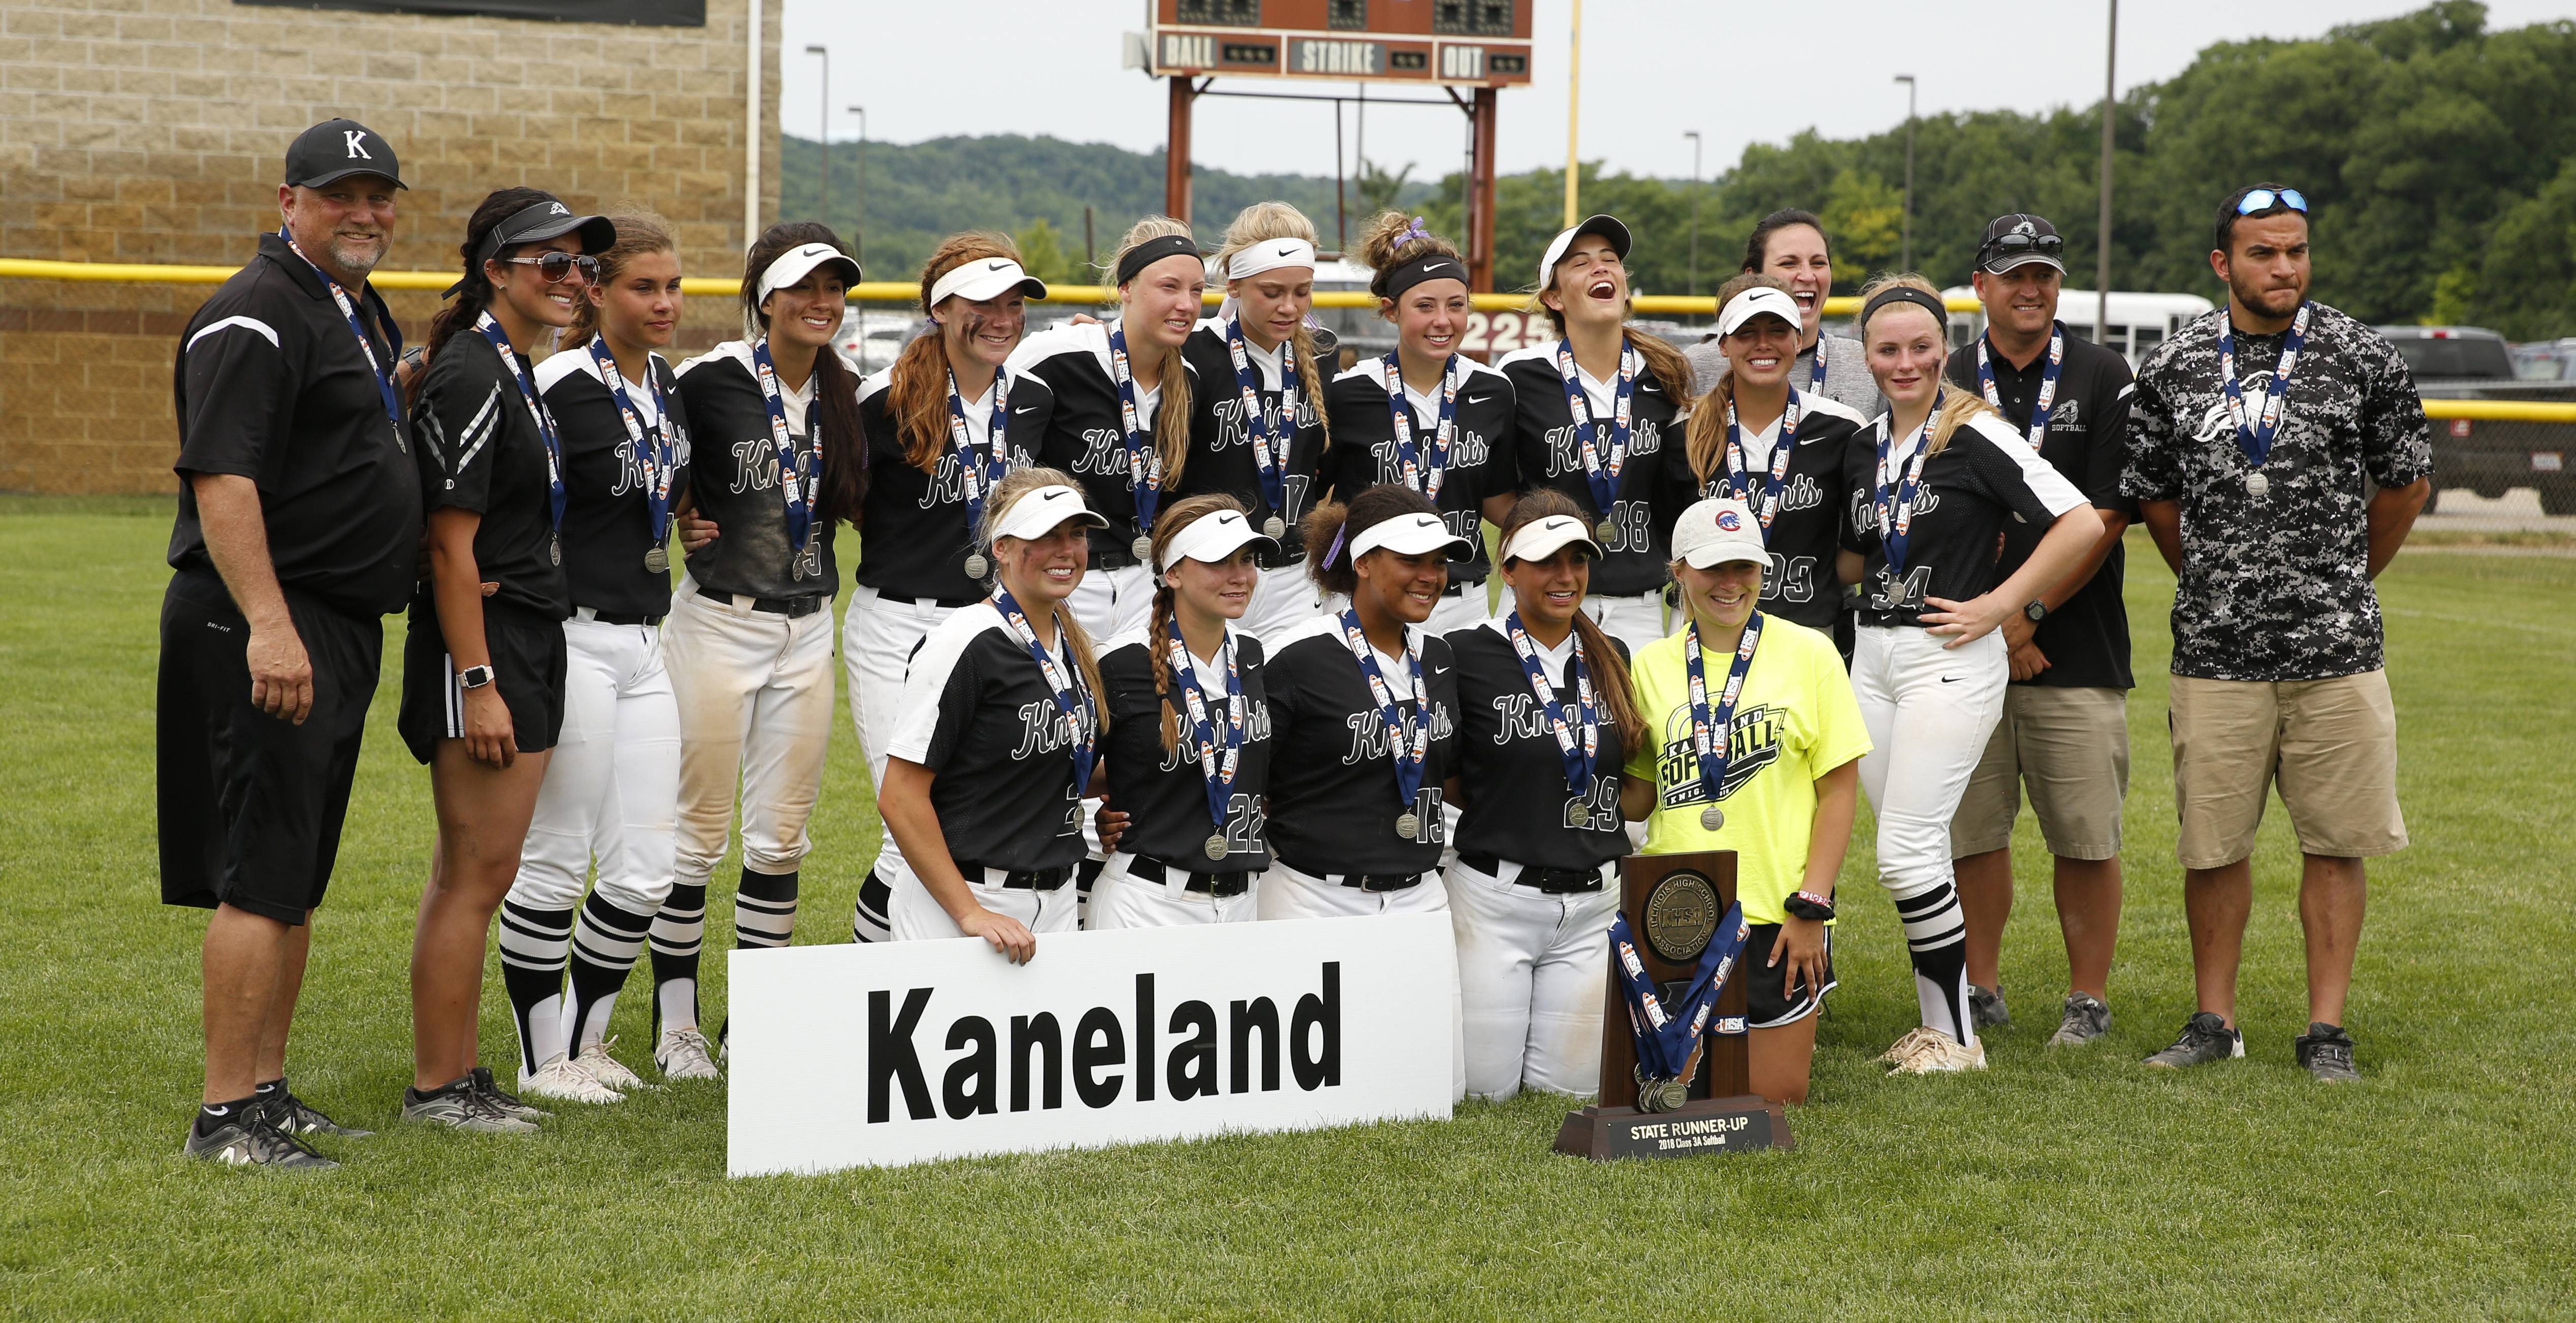 Kaneland players pose with the second place trophy following the IHSA Class 3A state softball championship game.